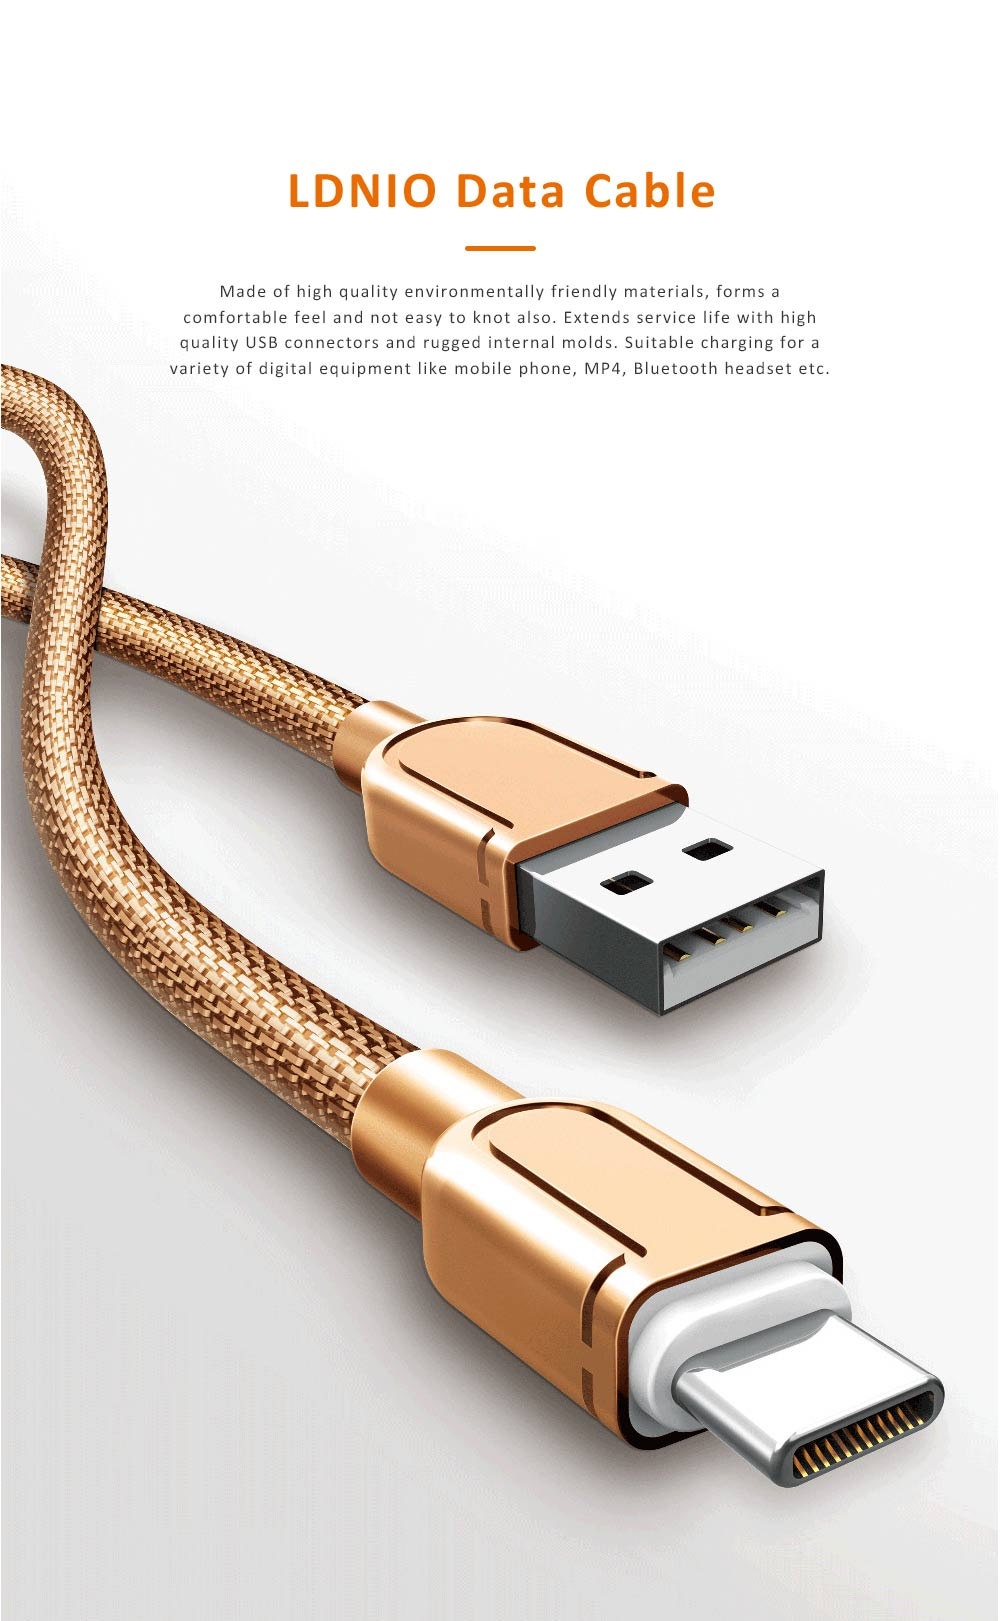 1M Type C Fast Charging Metal USB Cable, USB Data Cable with Zinc Alloy Connector, LDNIO Compatible Data Line 2 Colors 0